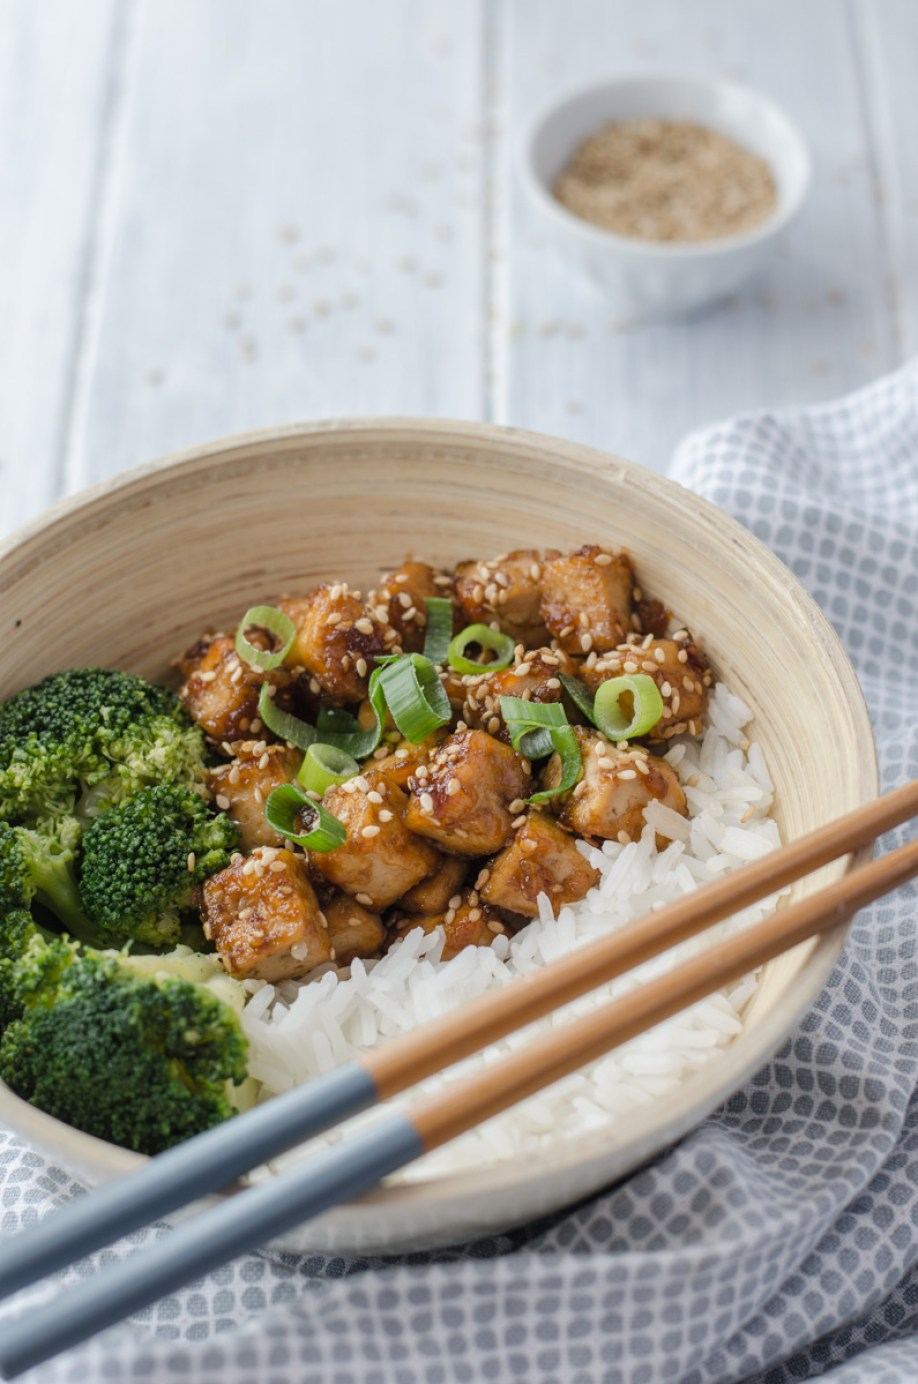 Honey Sesame Tofu cubes are full of sweet and spicy flavour and an easy way of preparing a delicious vegetarian meal. And a good news is that it will only take you 15 minutes to prepare!